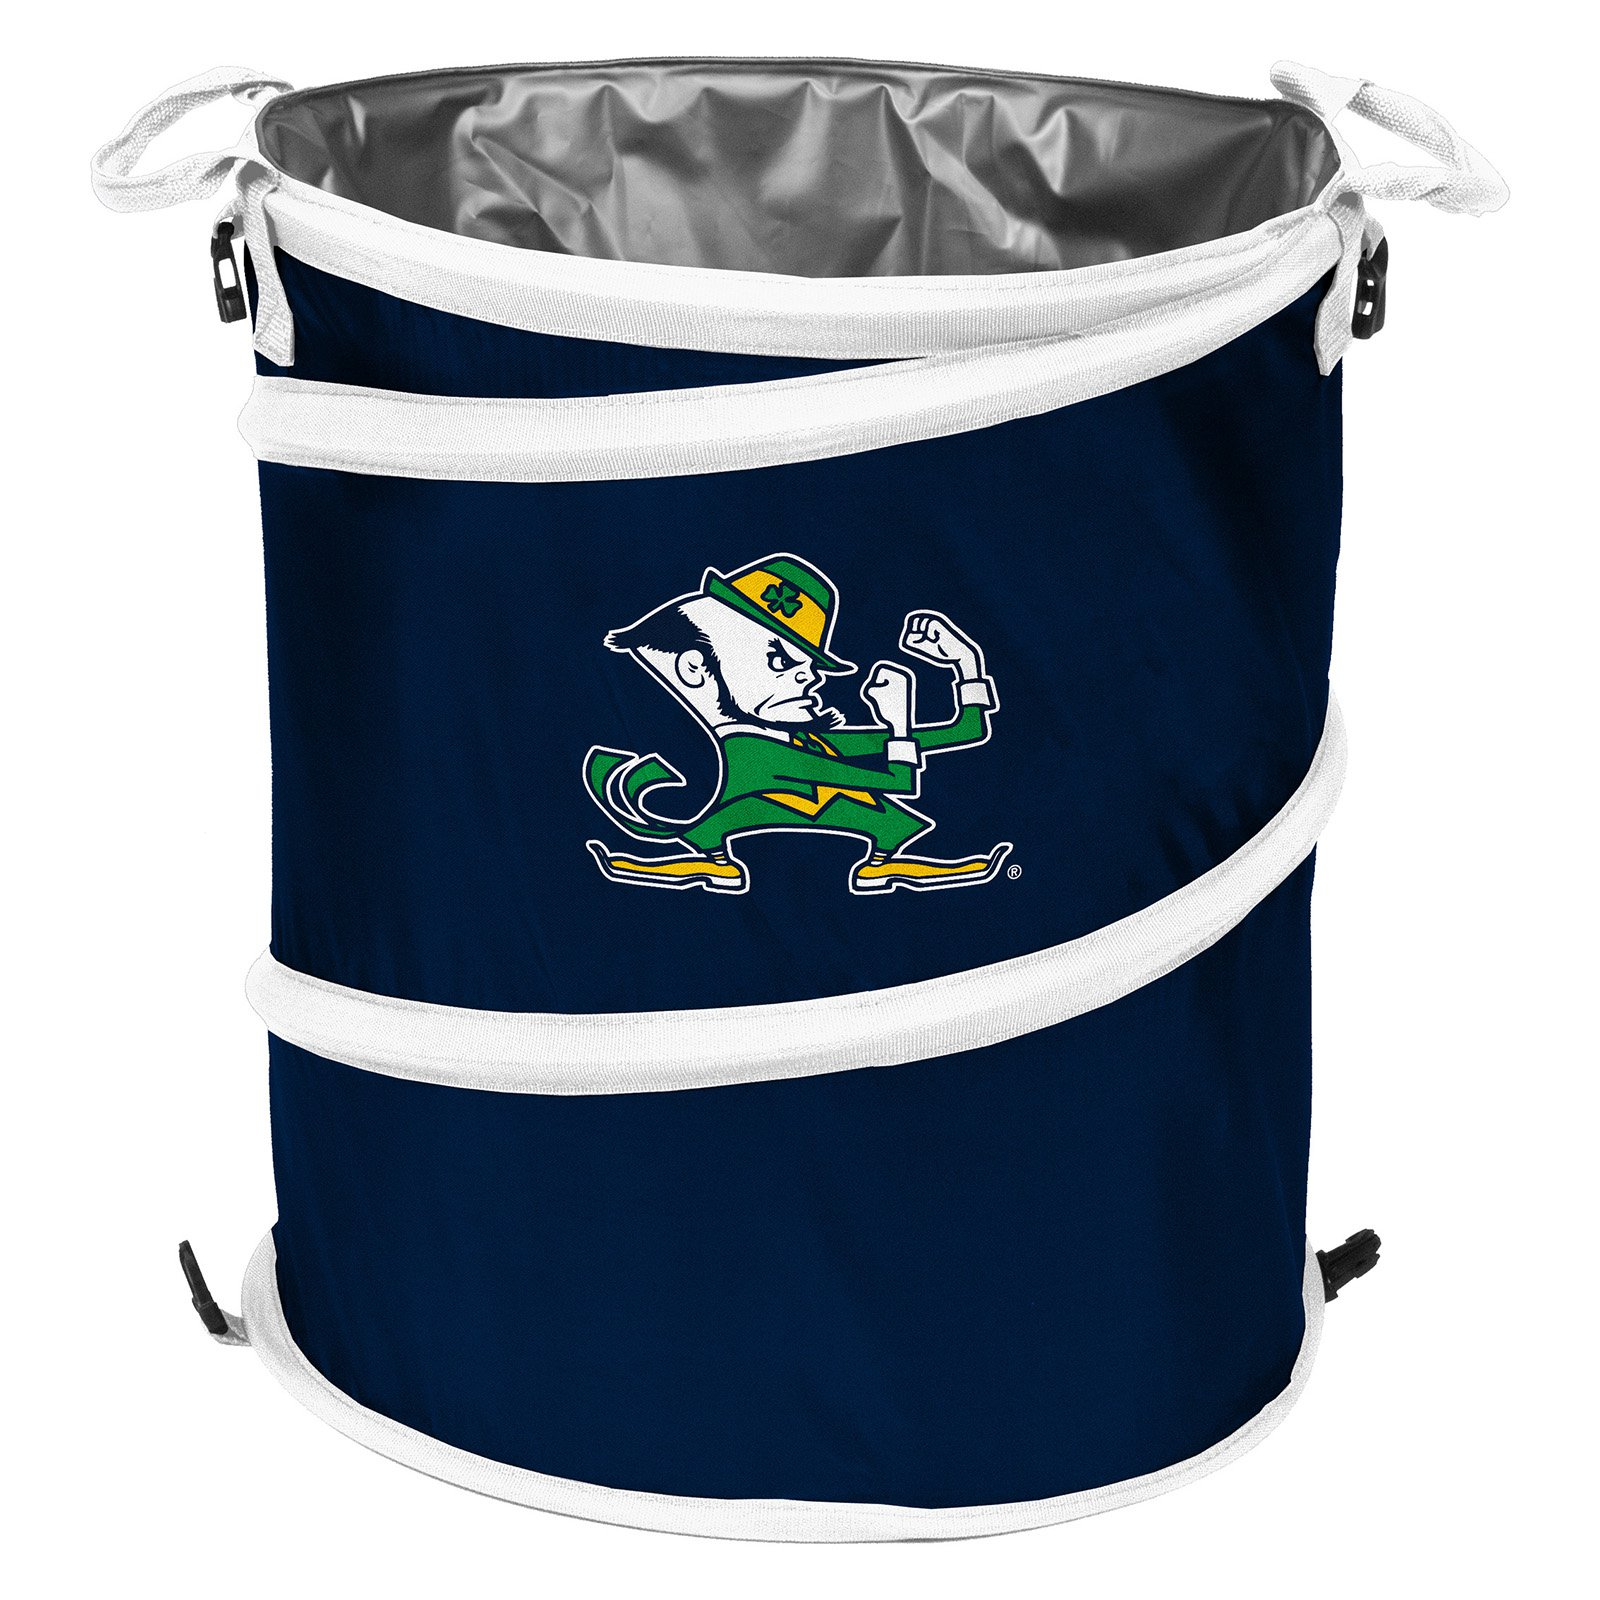 Notre Dame Fighting Irish Navy/White Collapsible 3-in-1